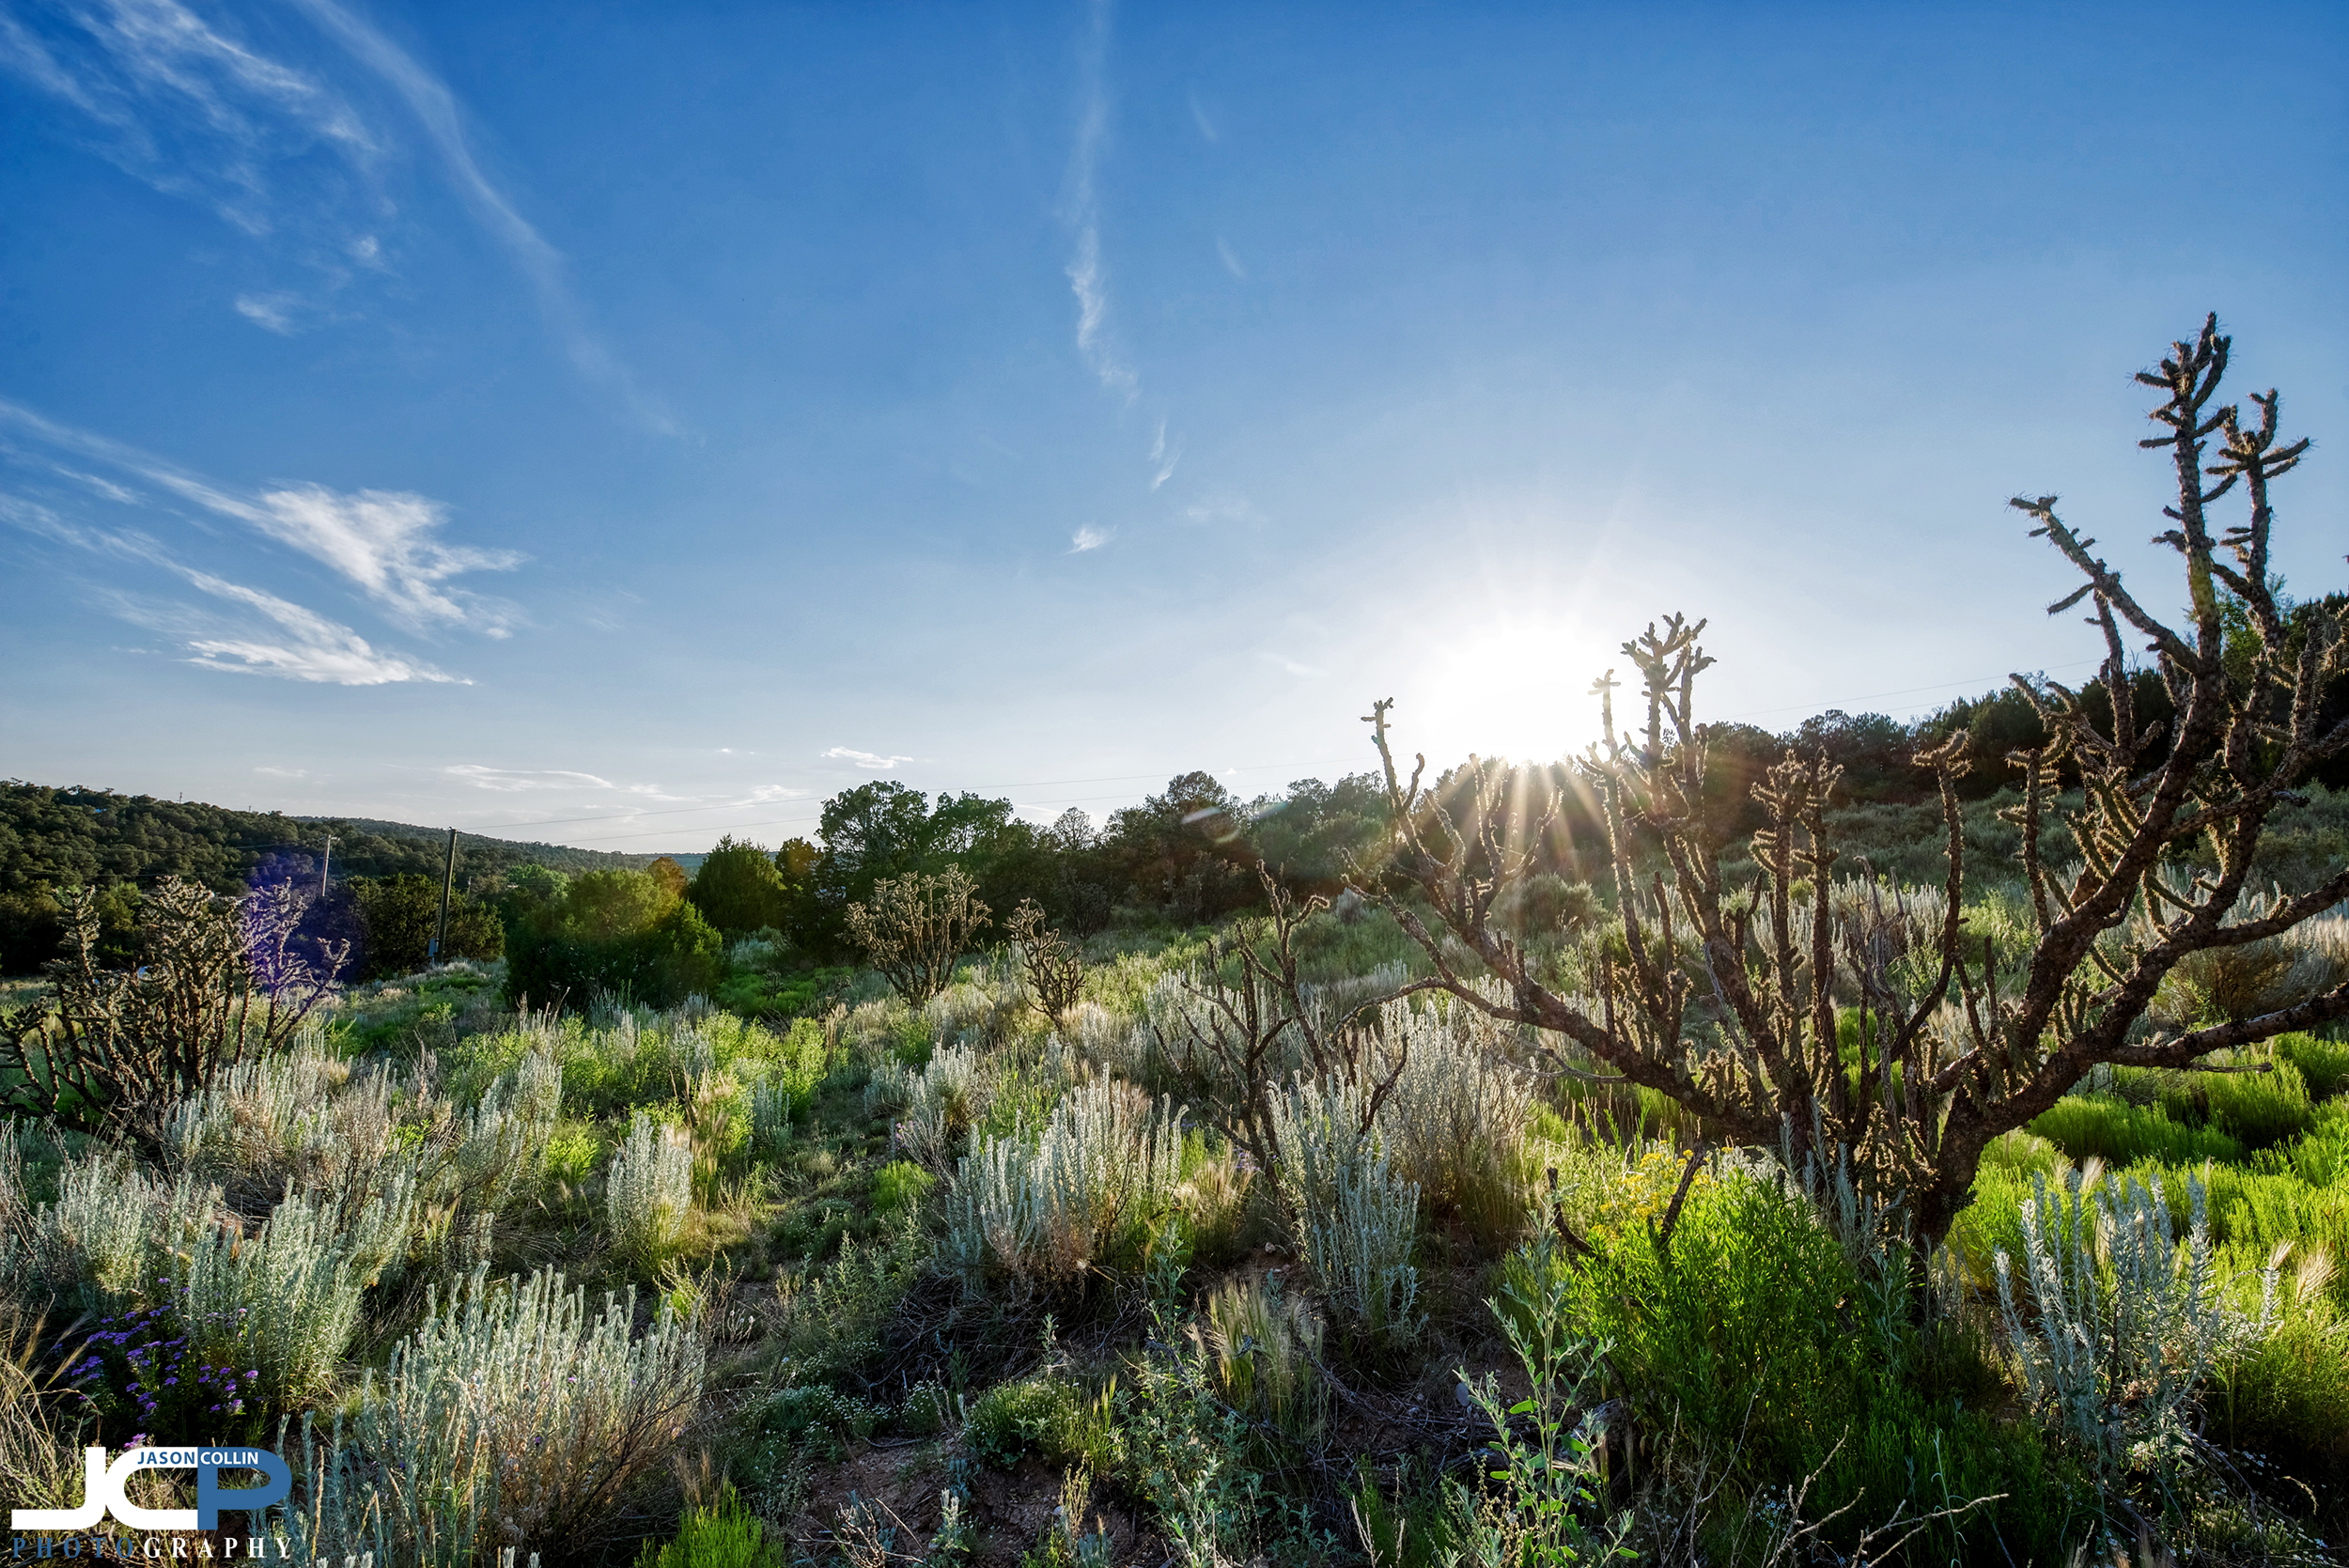 HDR sunset photography for Edgewood, New Mexico rural land real estate